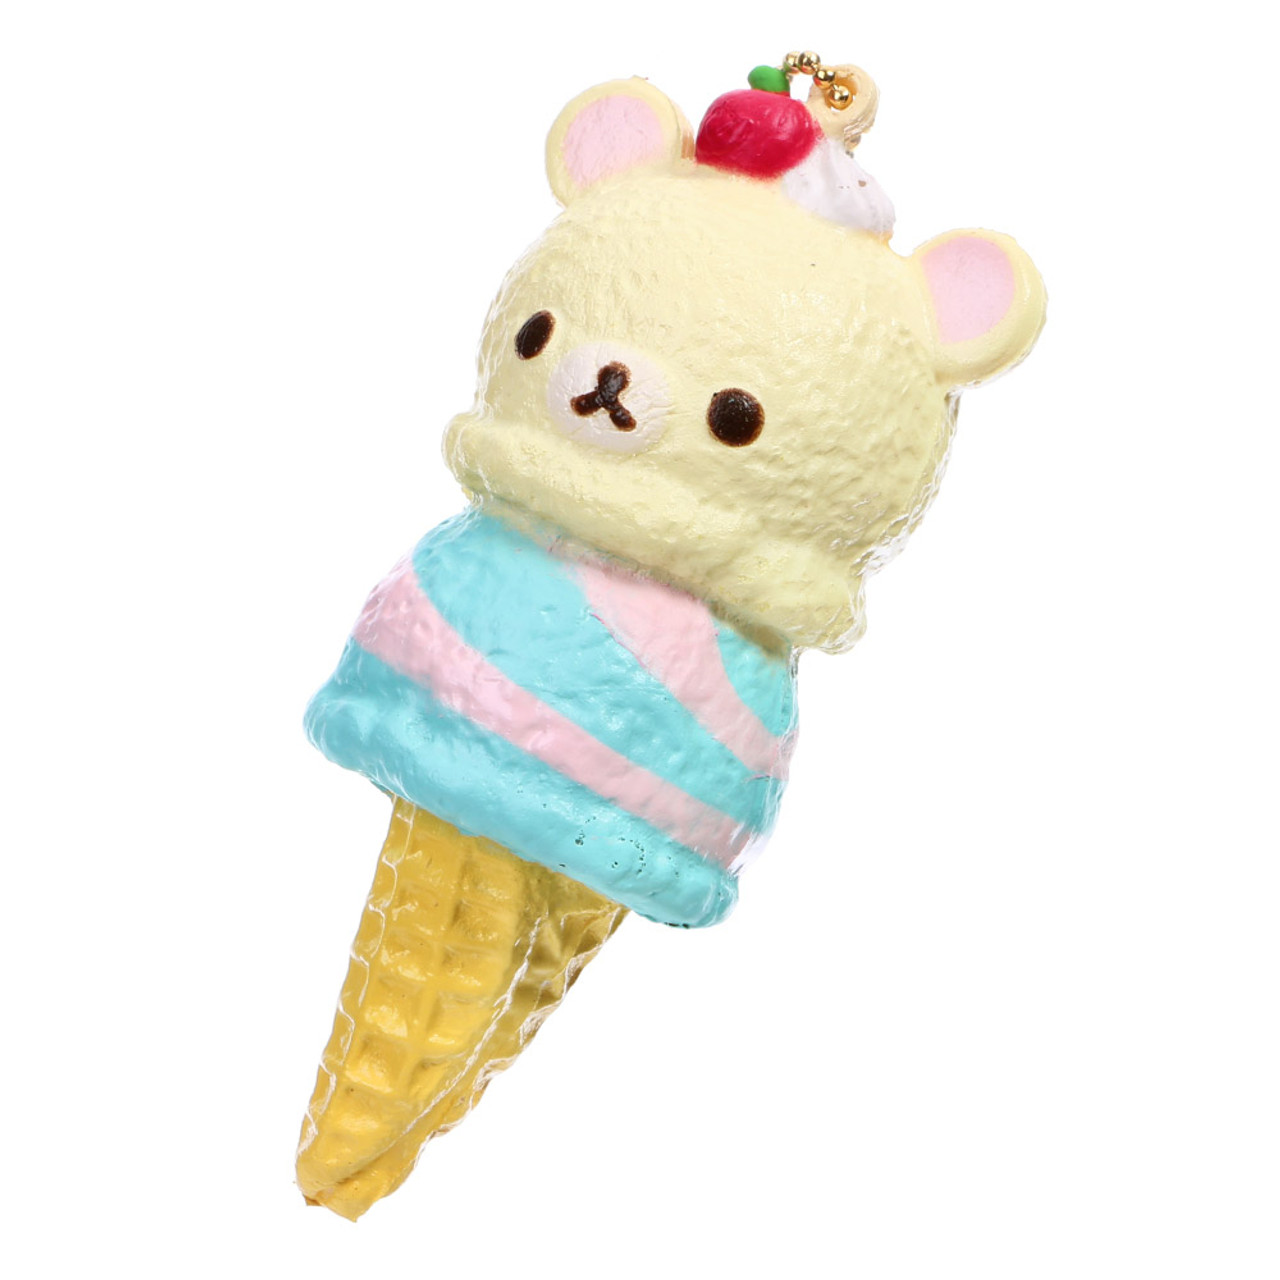 San-x Korilakkuma Berry Mint Double Ice-cream Squishy Charms ( Cover View )